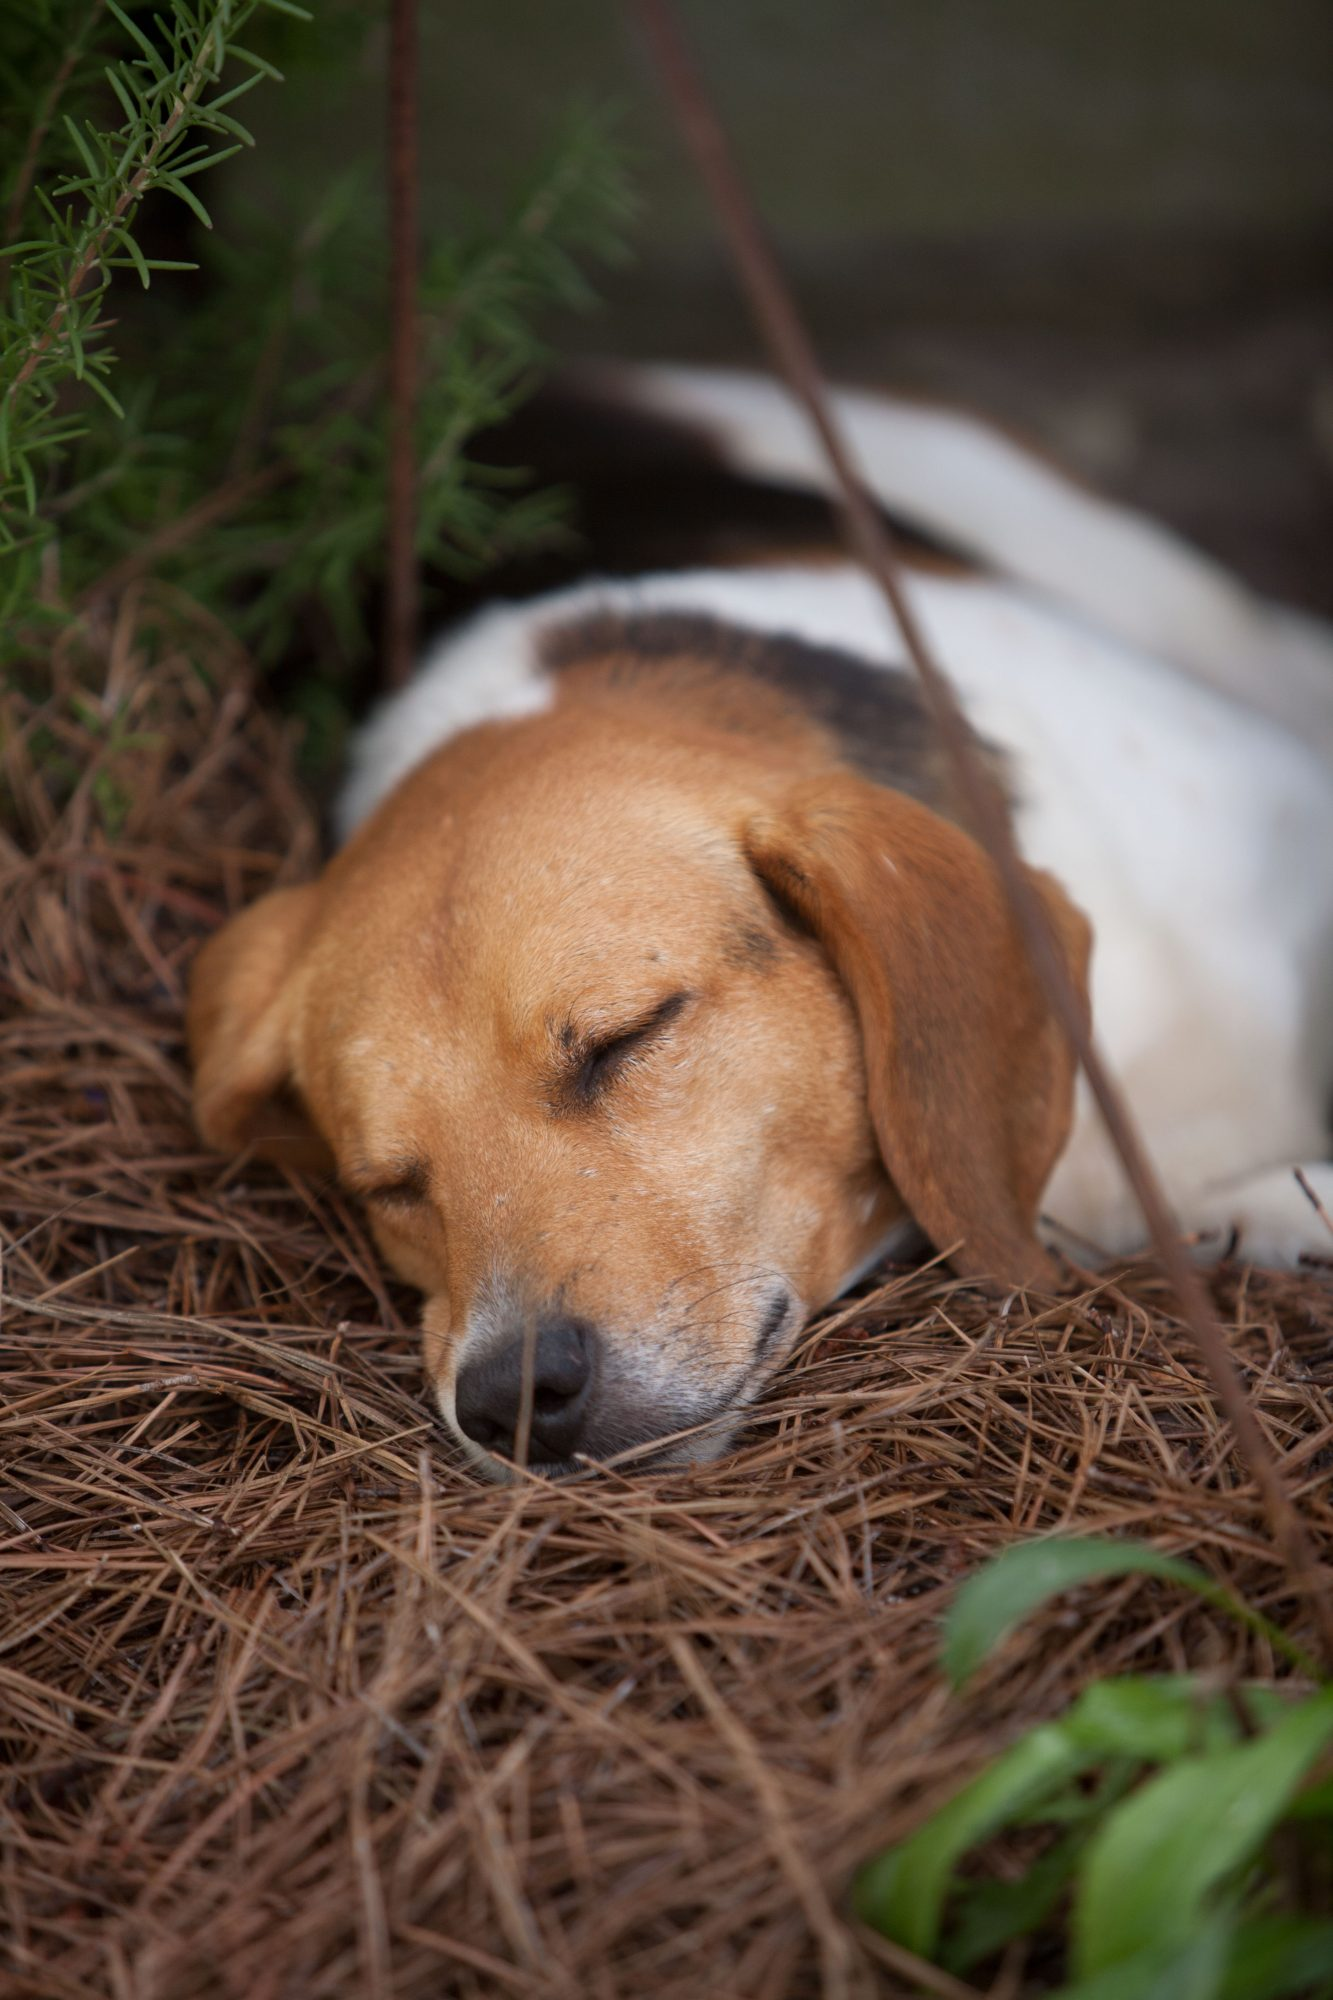 Beagle sleeping outside